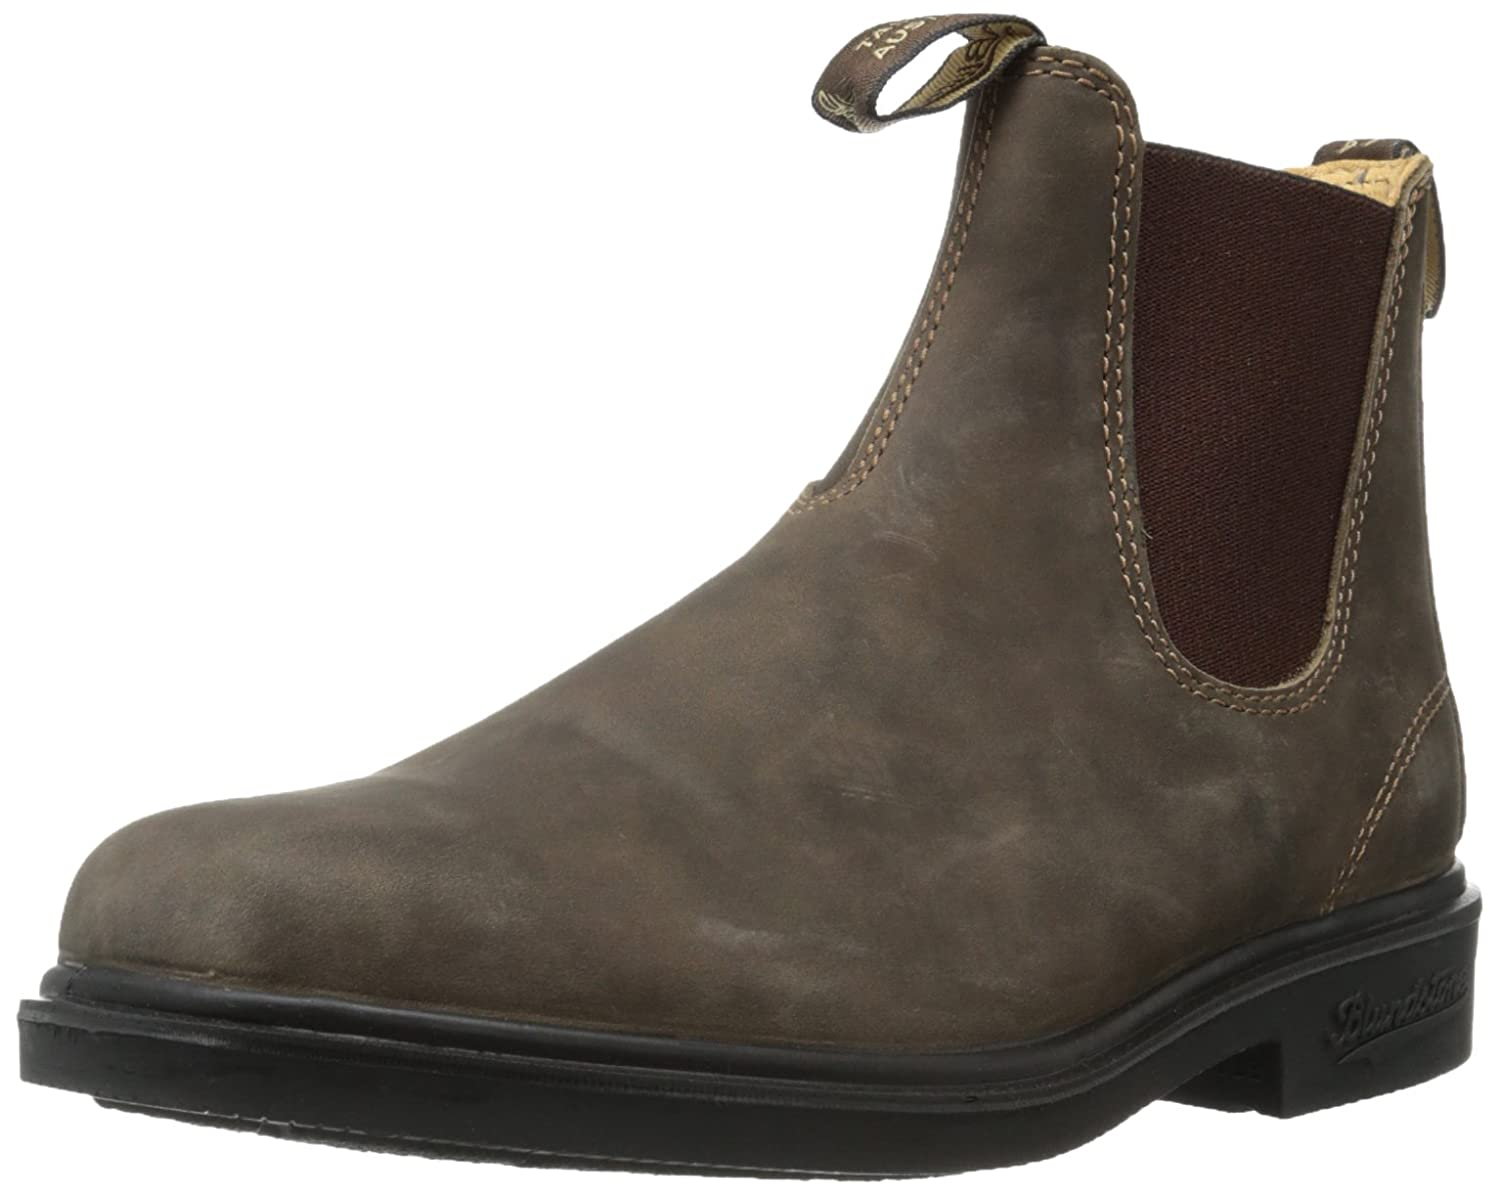 Blundstone Unisex Dress Series B00BXLSJC6 12 M US Mens -11 AU|Rustic Brown